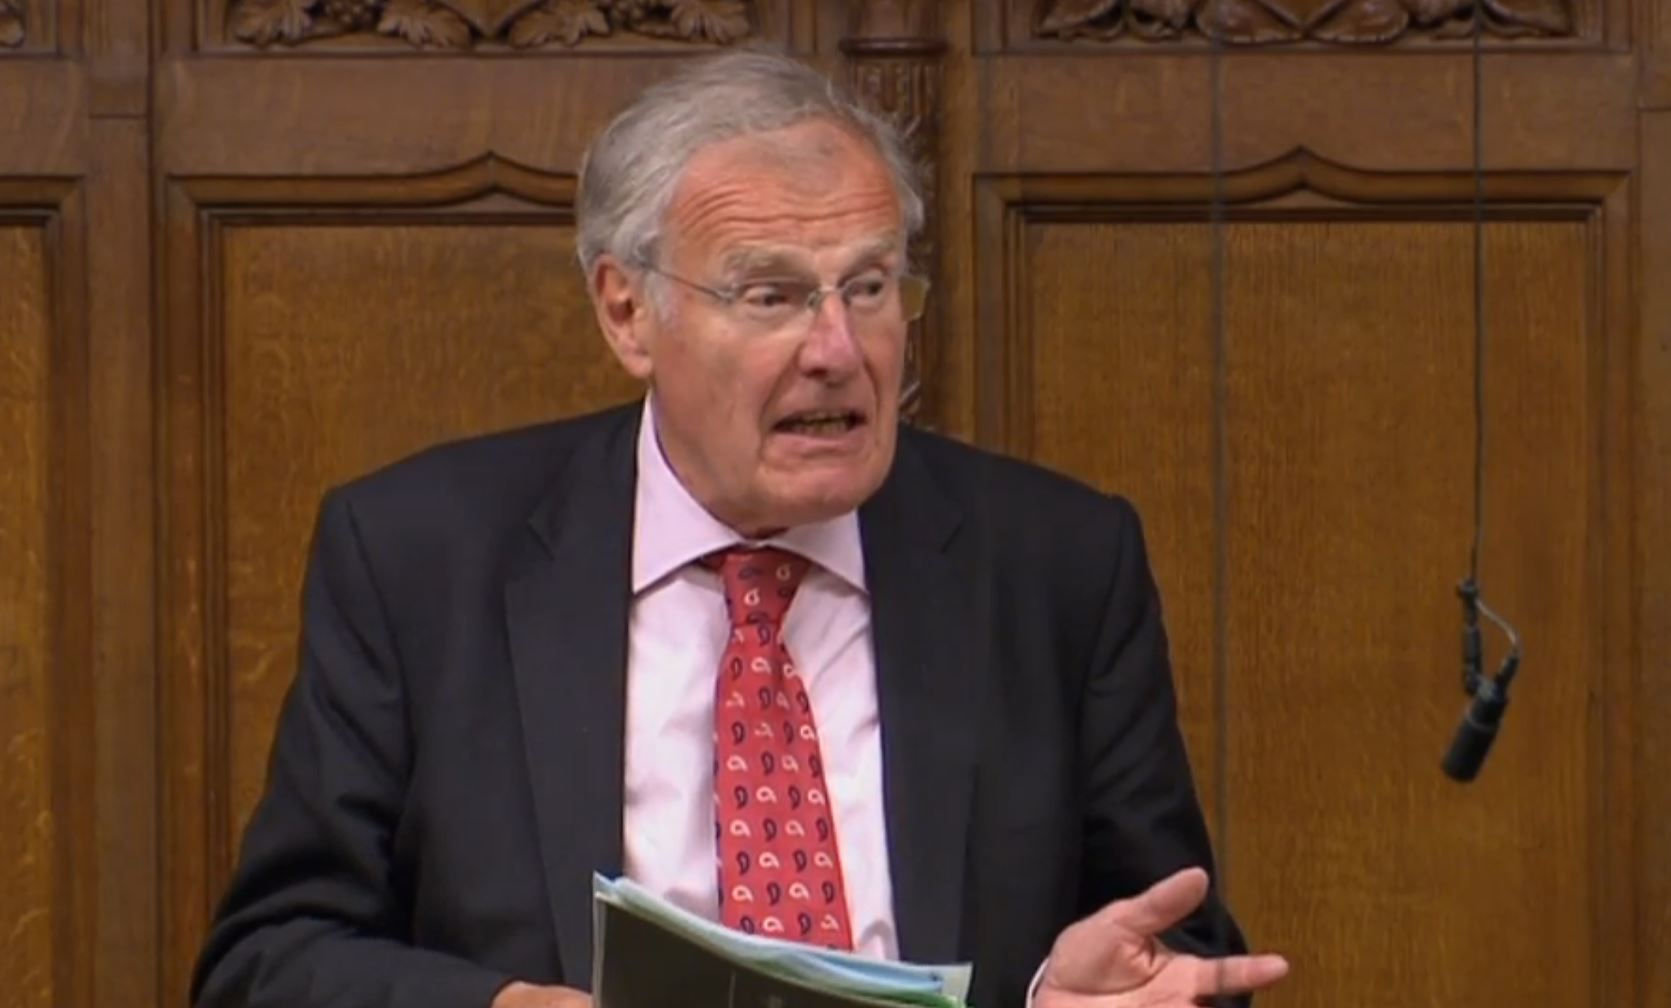 Sir Christopher Chope speaking in the House of Commons